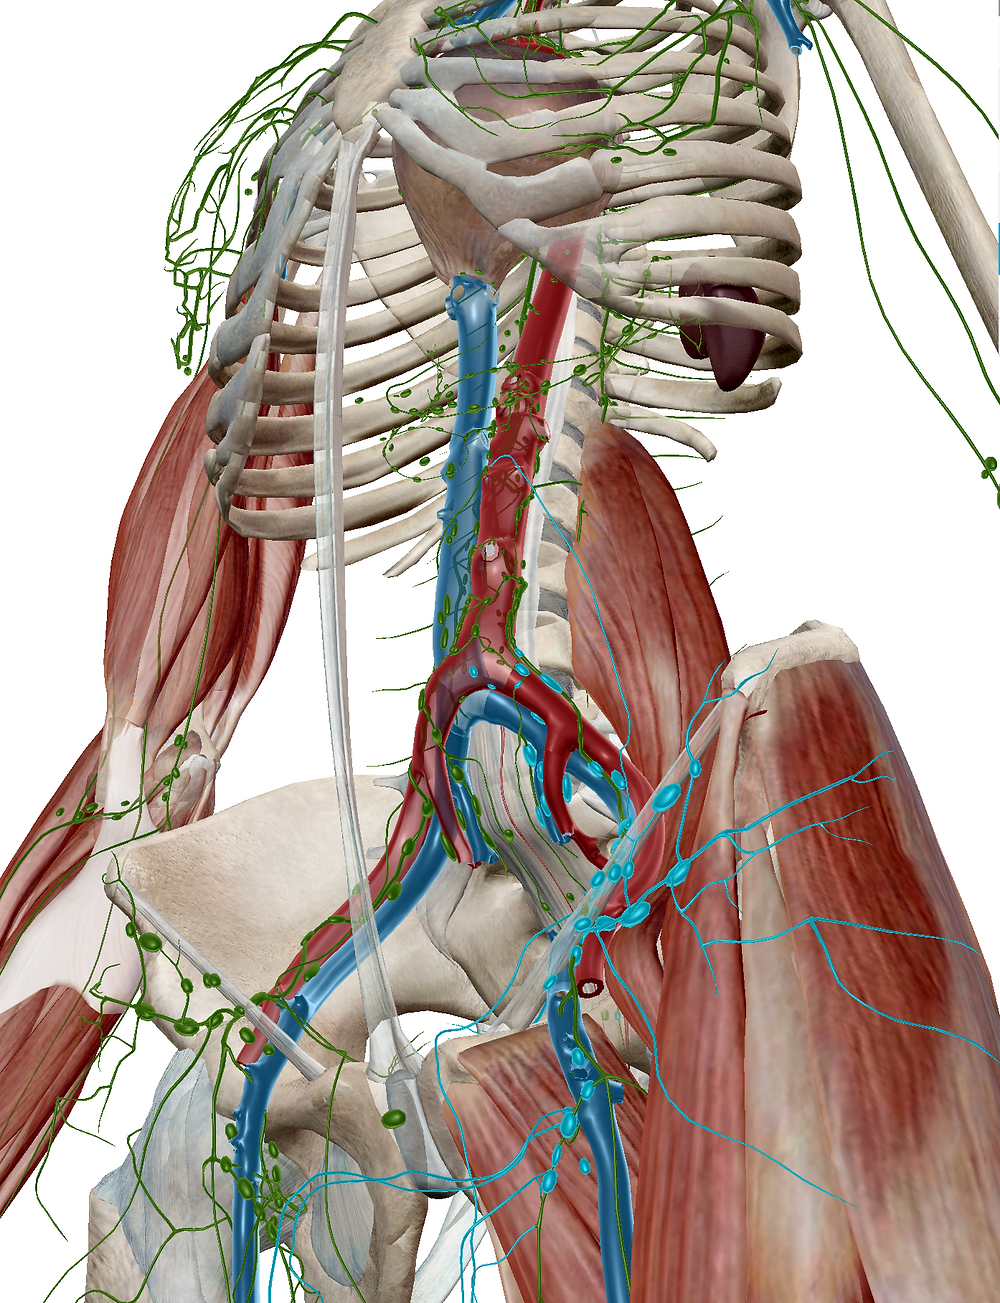 Inguinal lymph node highlighted in blue.